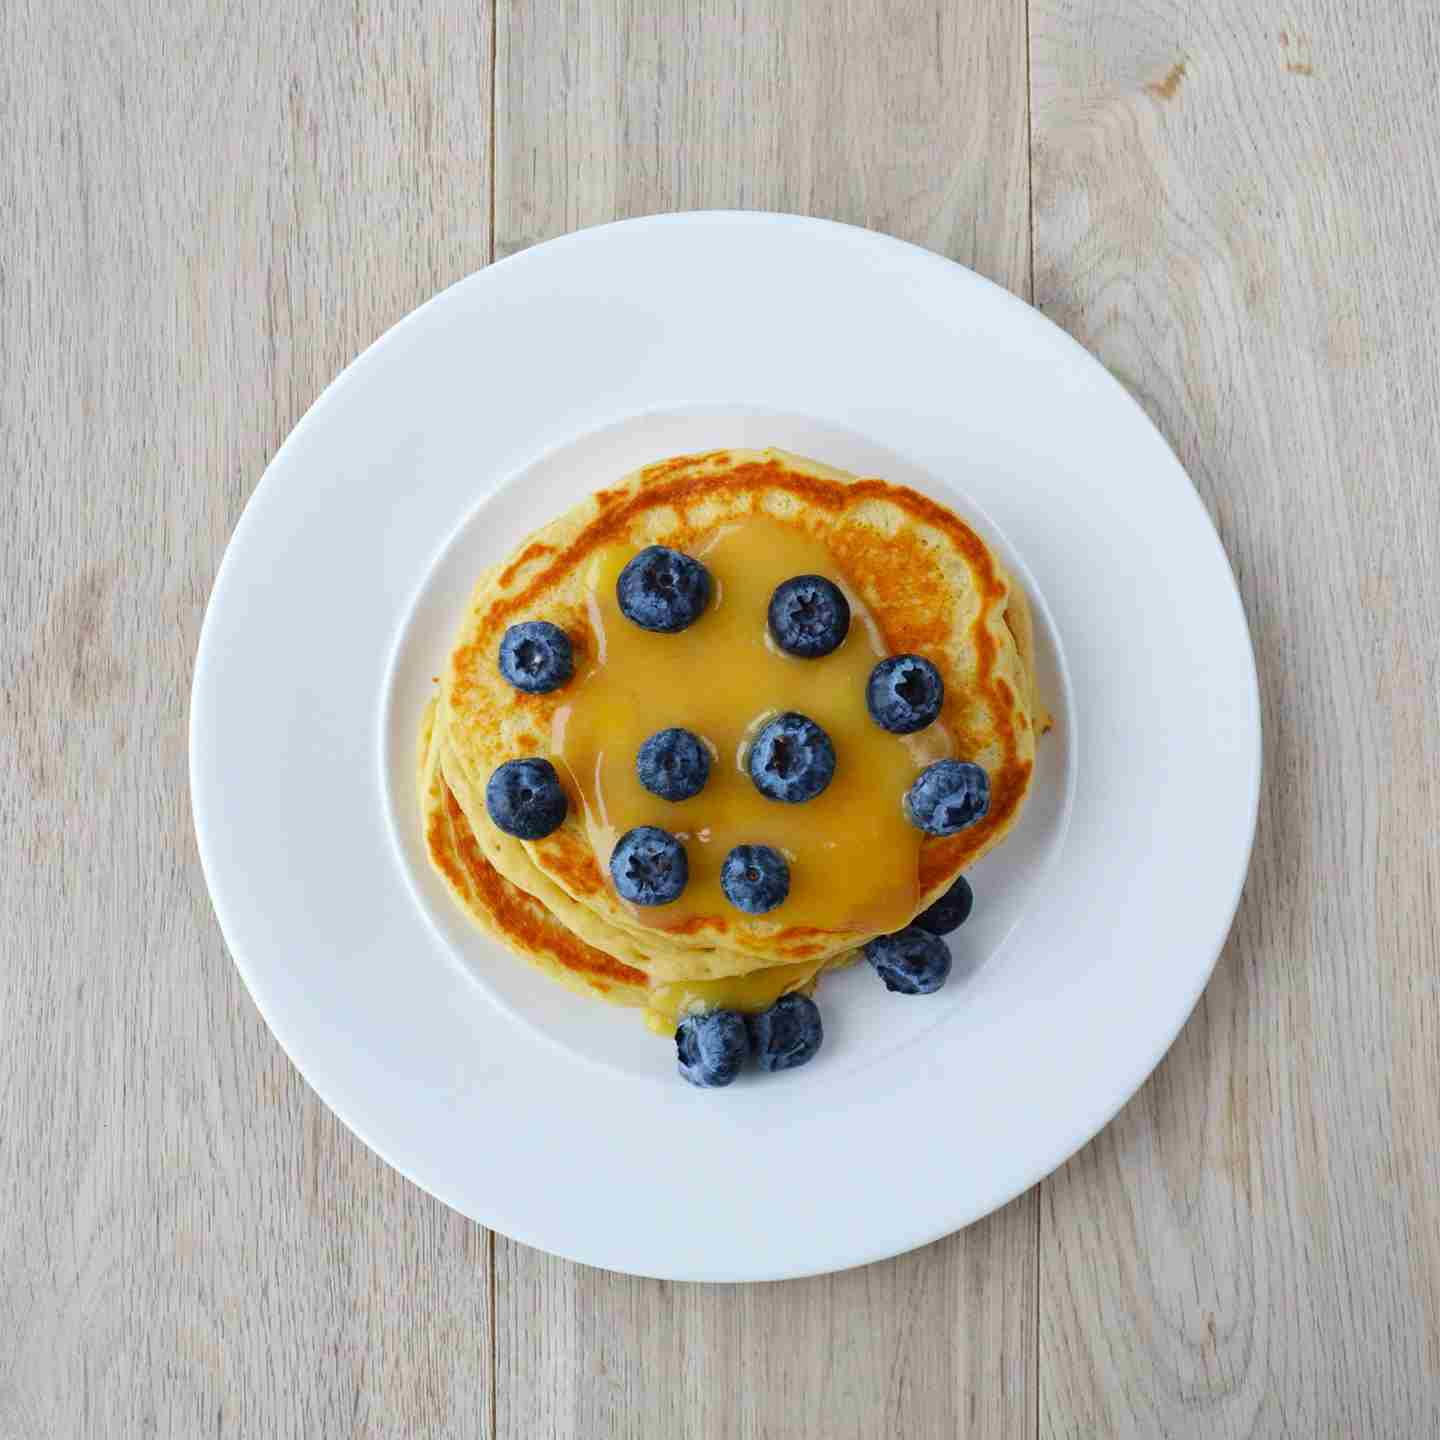 Malted-lemon-pancakes-2.jpg